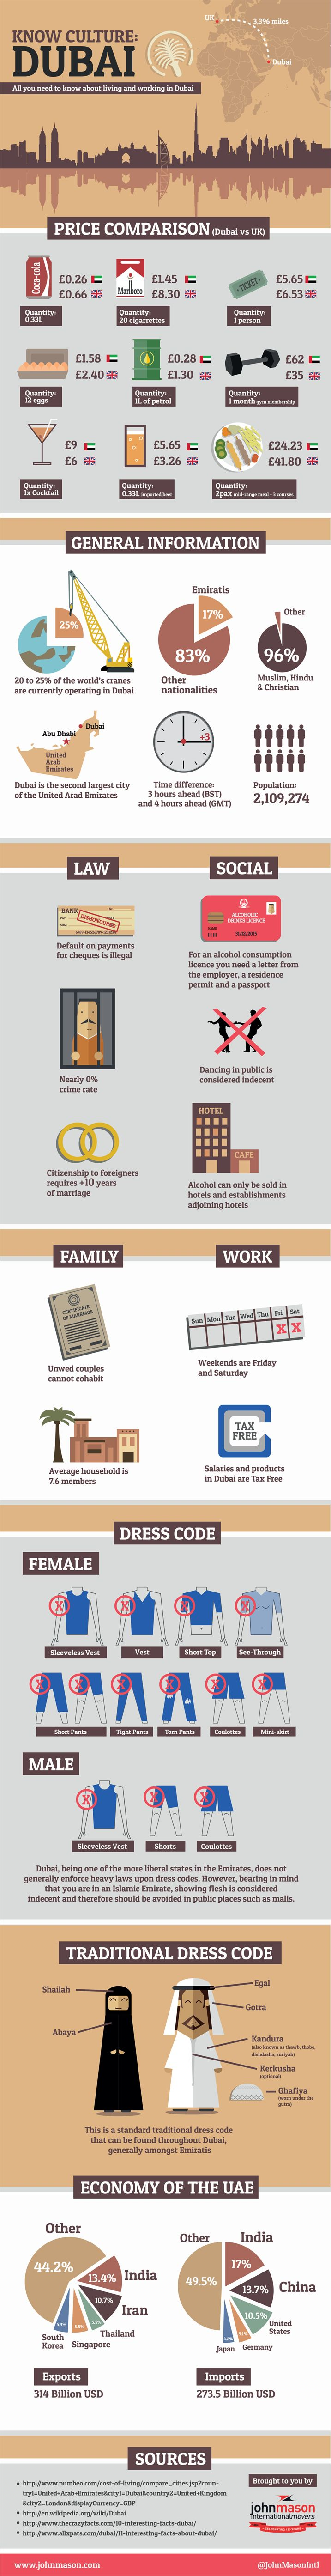 A move to Dubai on the horizon? Know your new culture with this infographic!